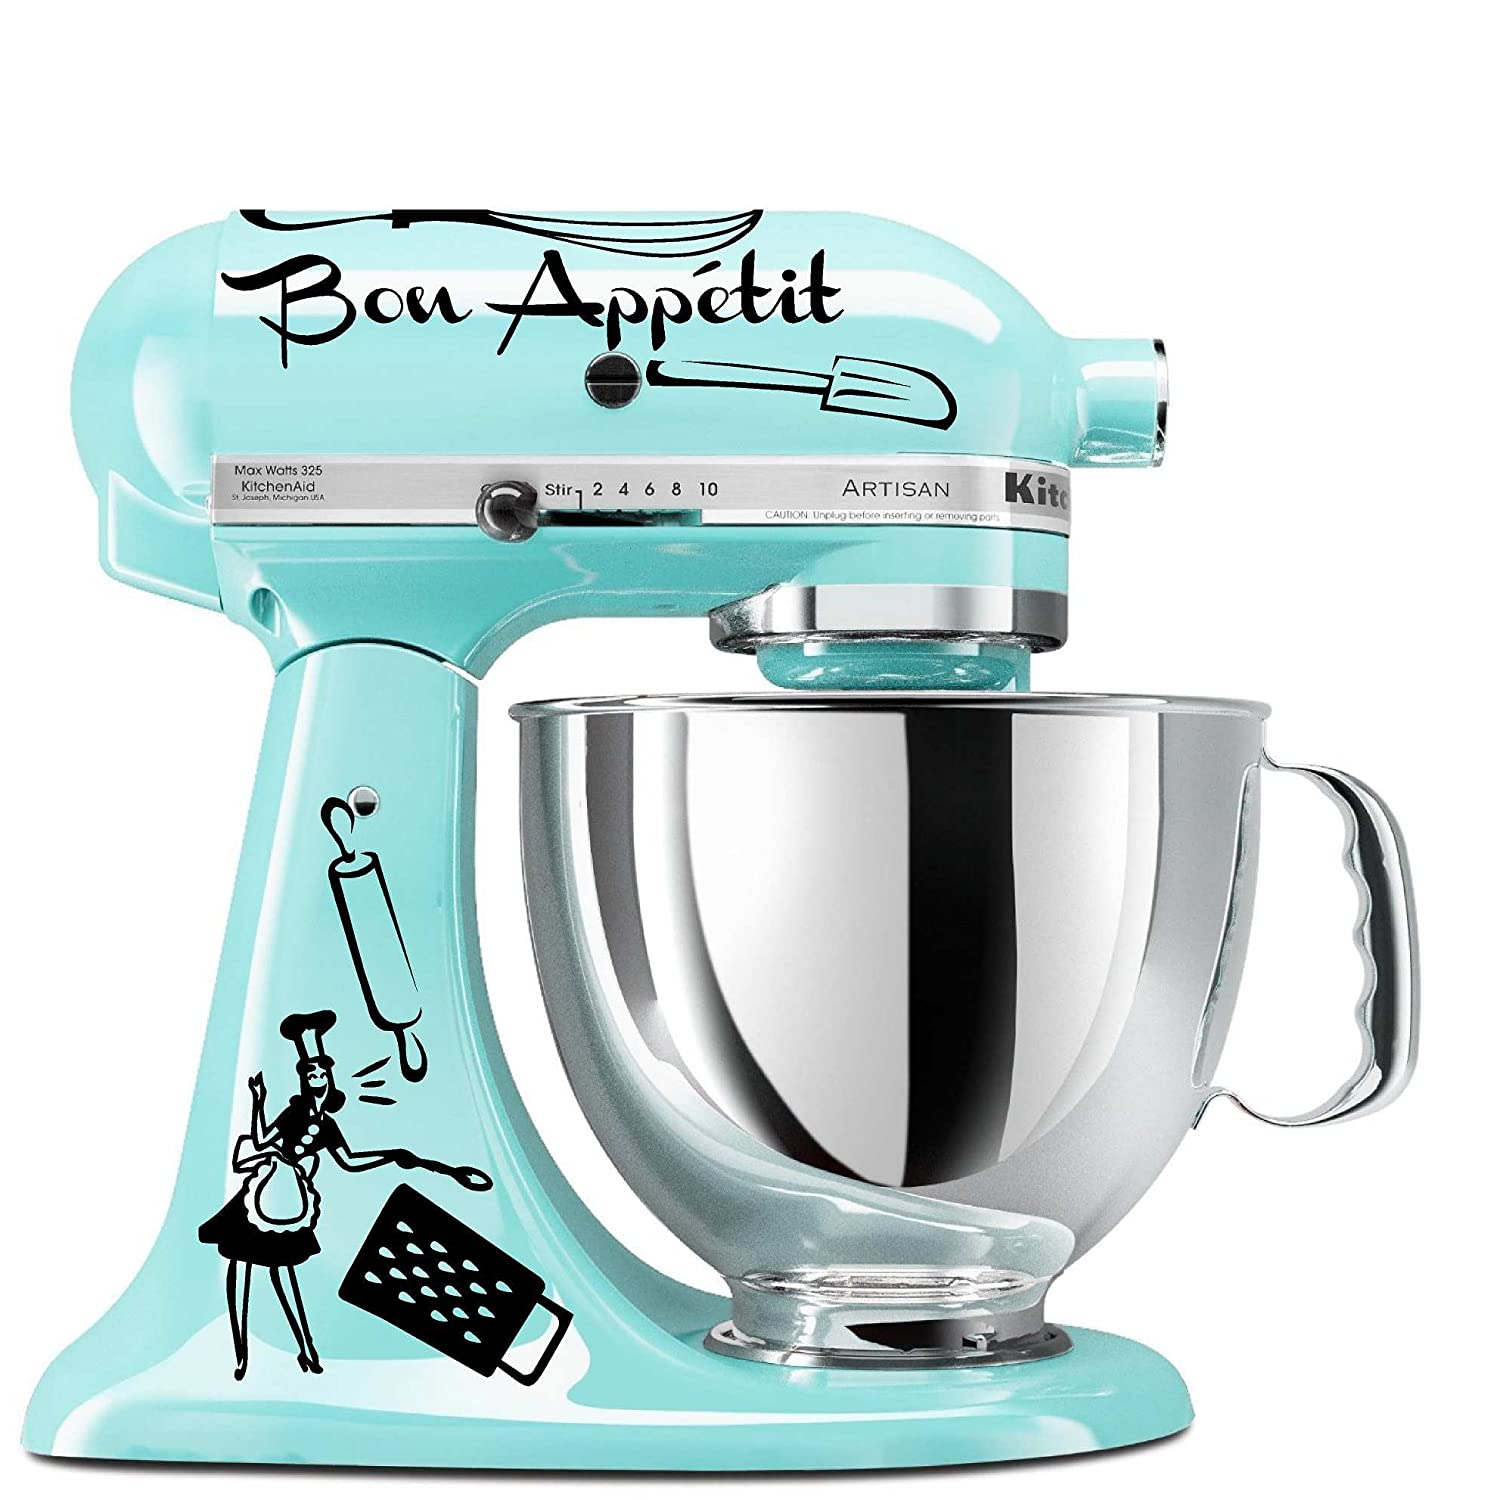 Amazon.com: Bon Appetit Mixer Decal Set (Blue): Kitchen & Dining